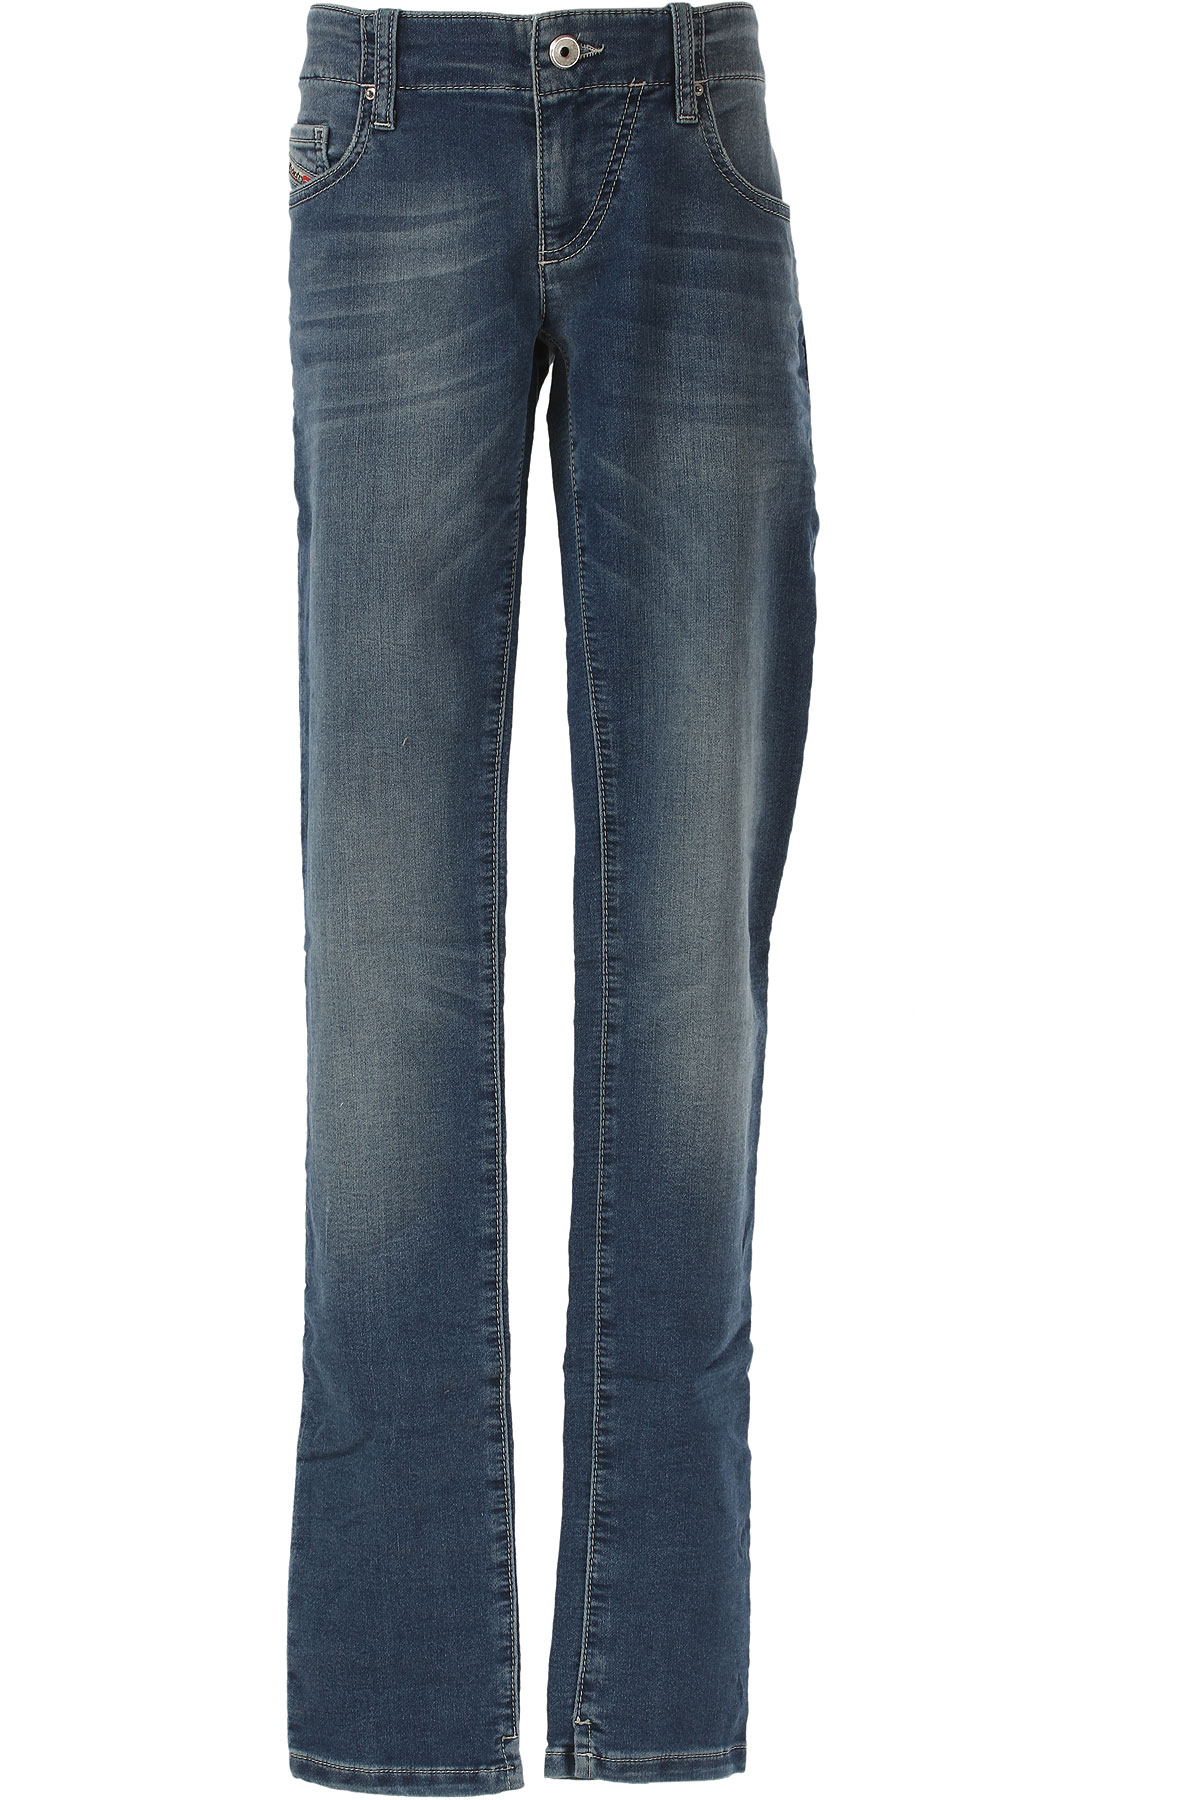 Image of Diesel Kids Jeans for Girls On Sale in Outlet, Blue, Cotton, 2017, 14Y 16Y